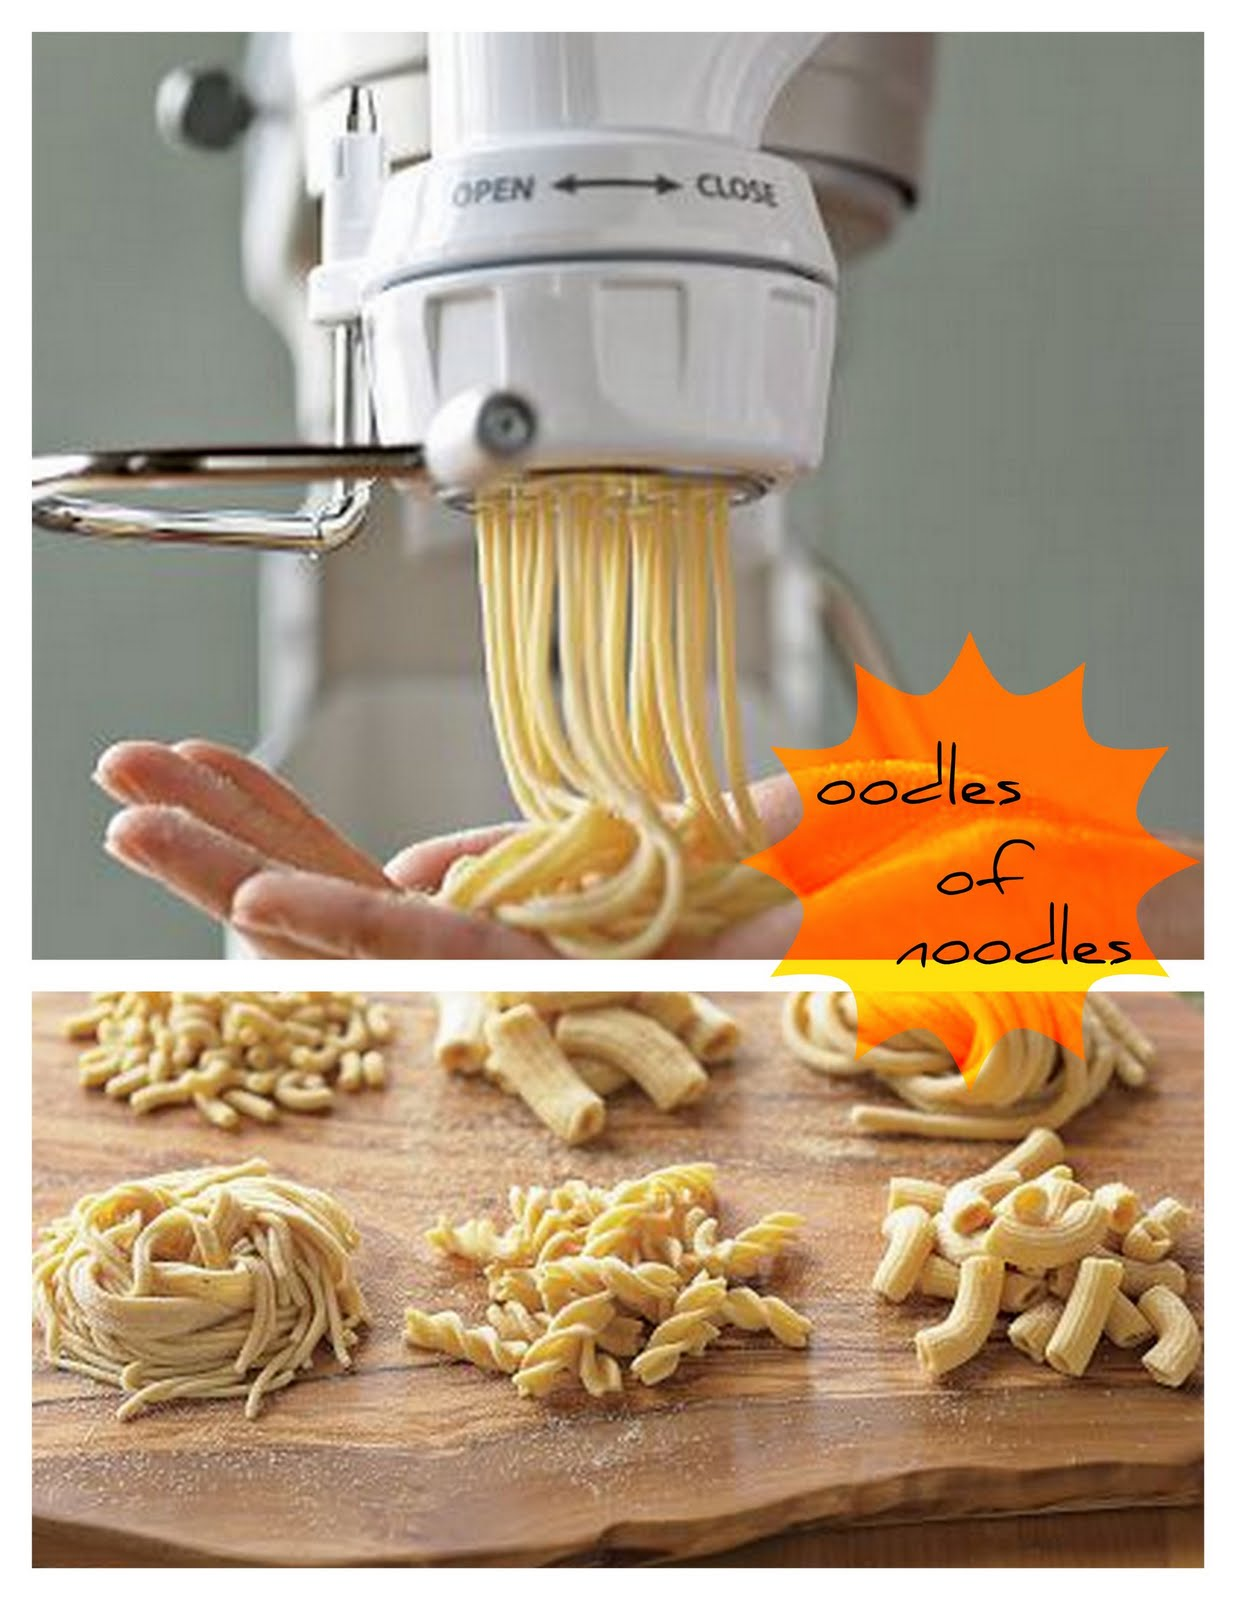 kitchen aid pasta attachment kitchens remodeling kitchenaid canadian tire appliances tips 10 photos to maker